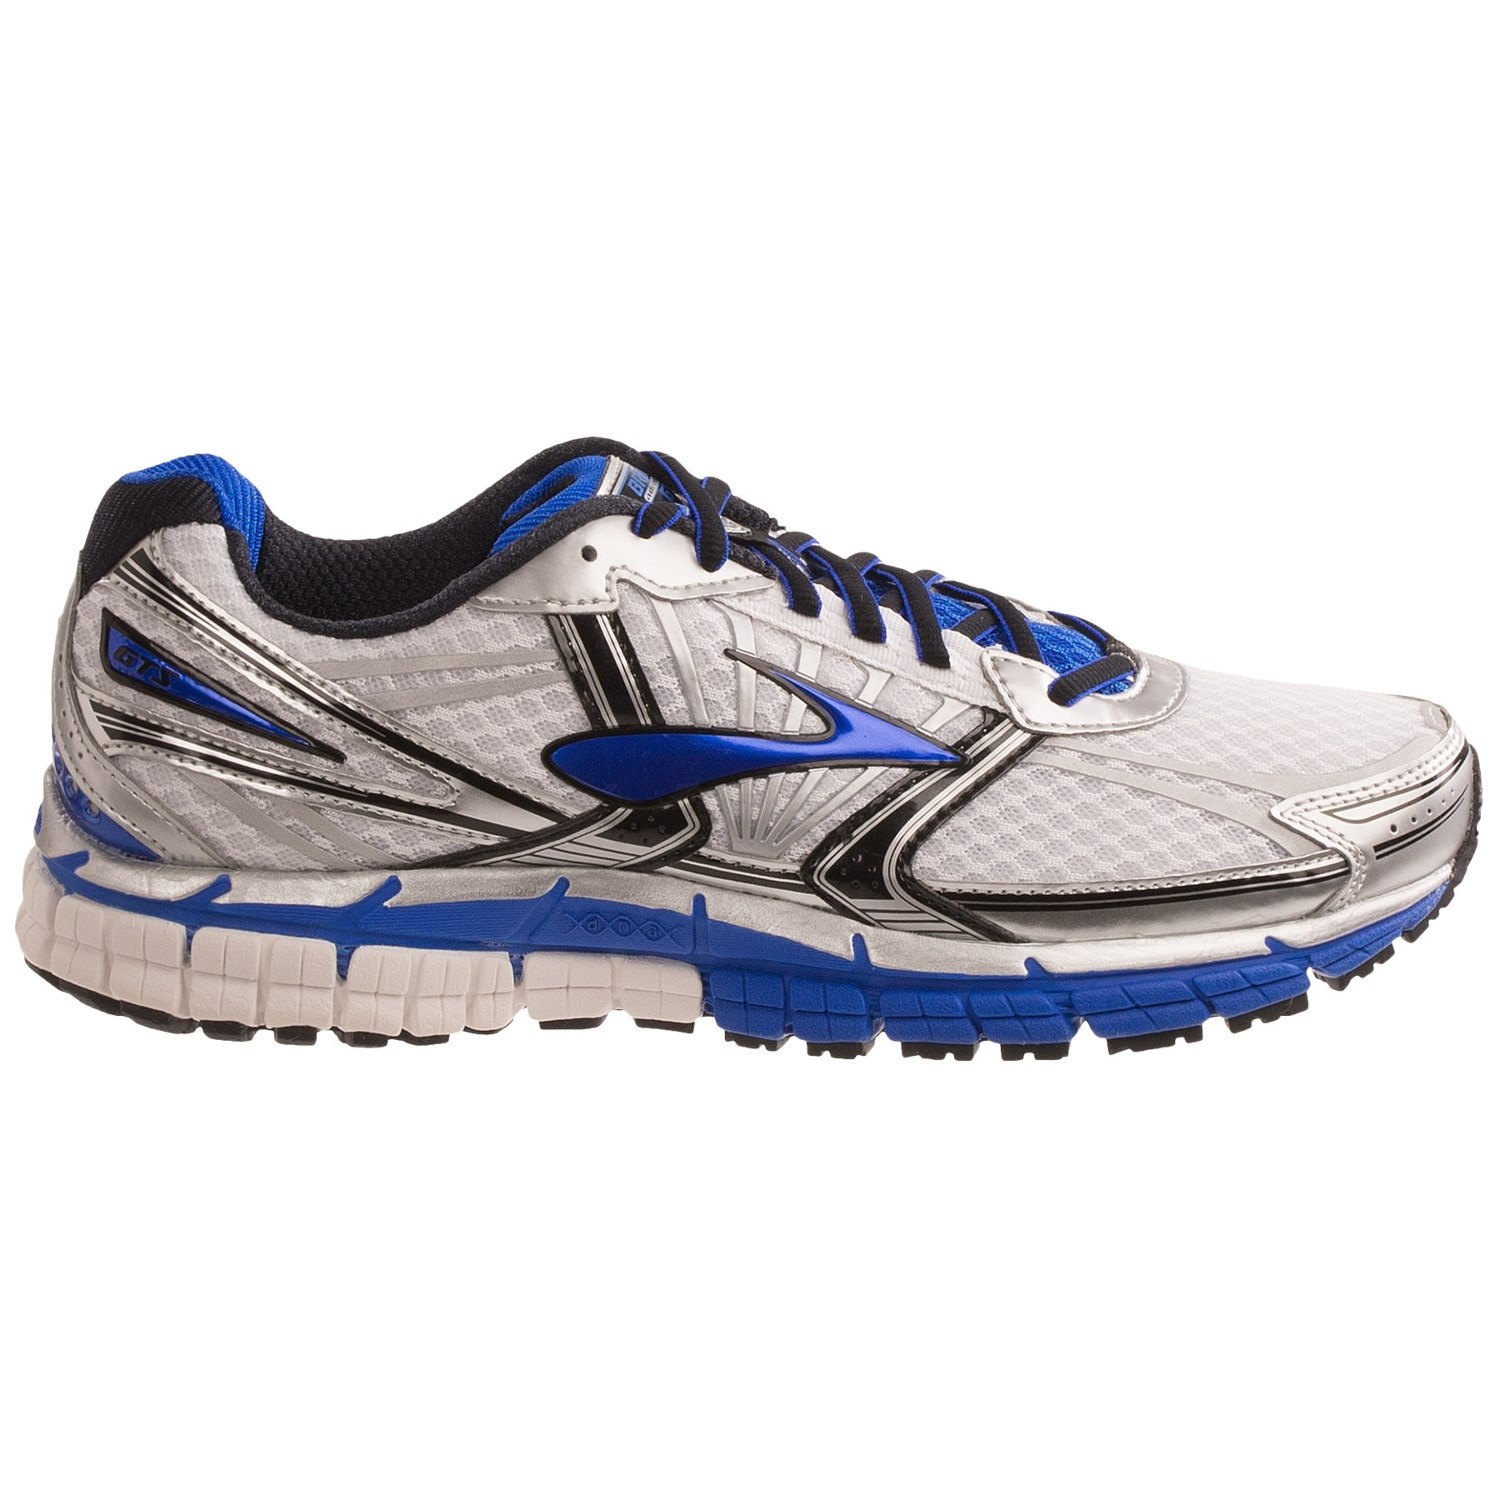 Adrenaline Gts  Running Shoes Review